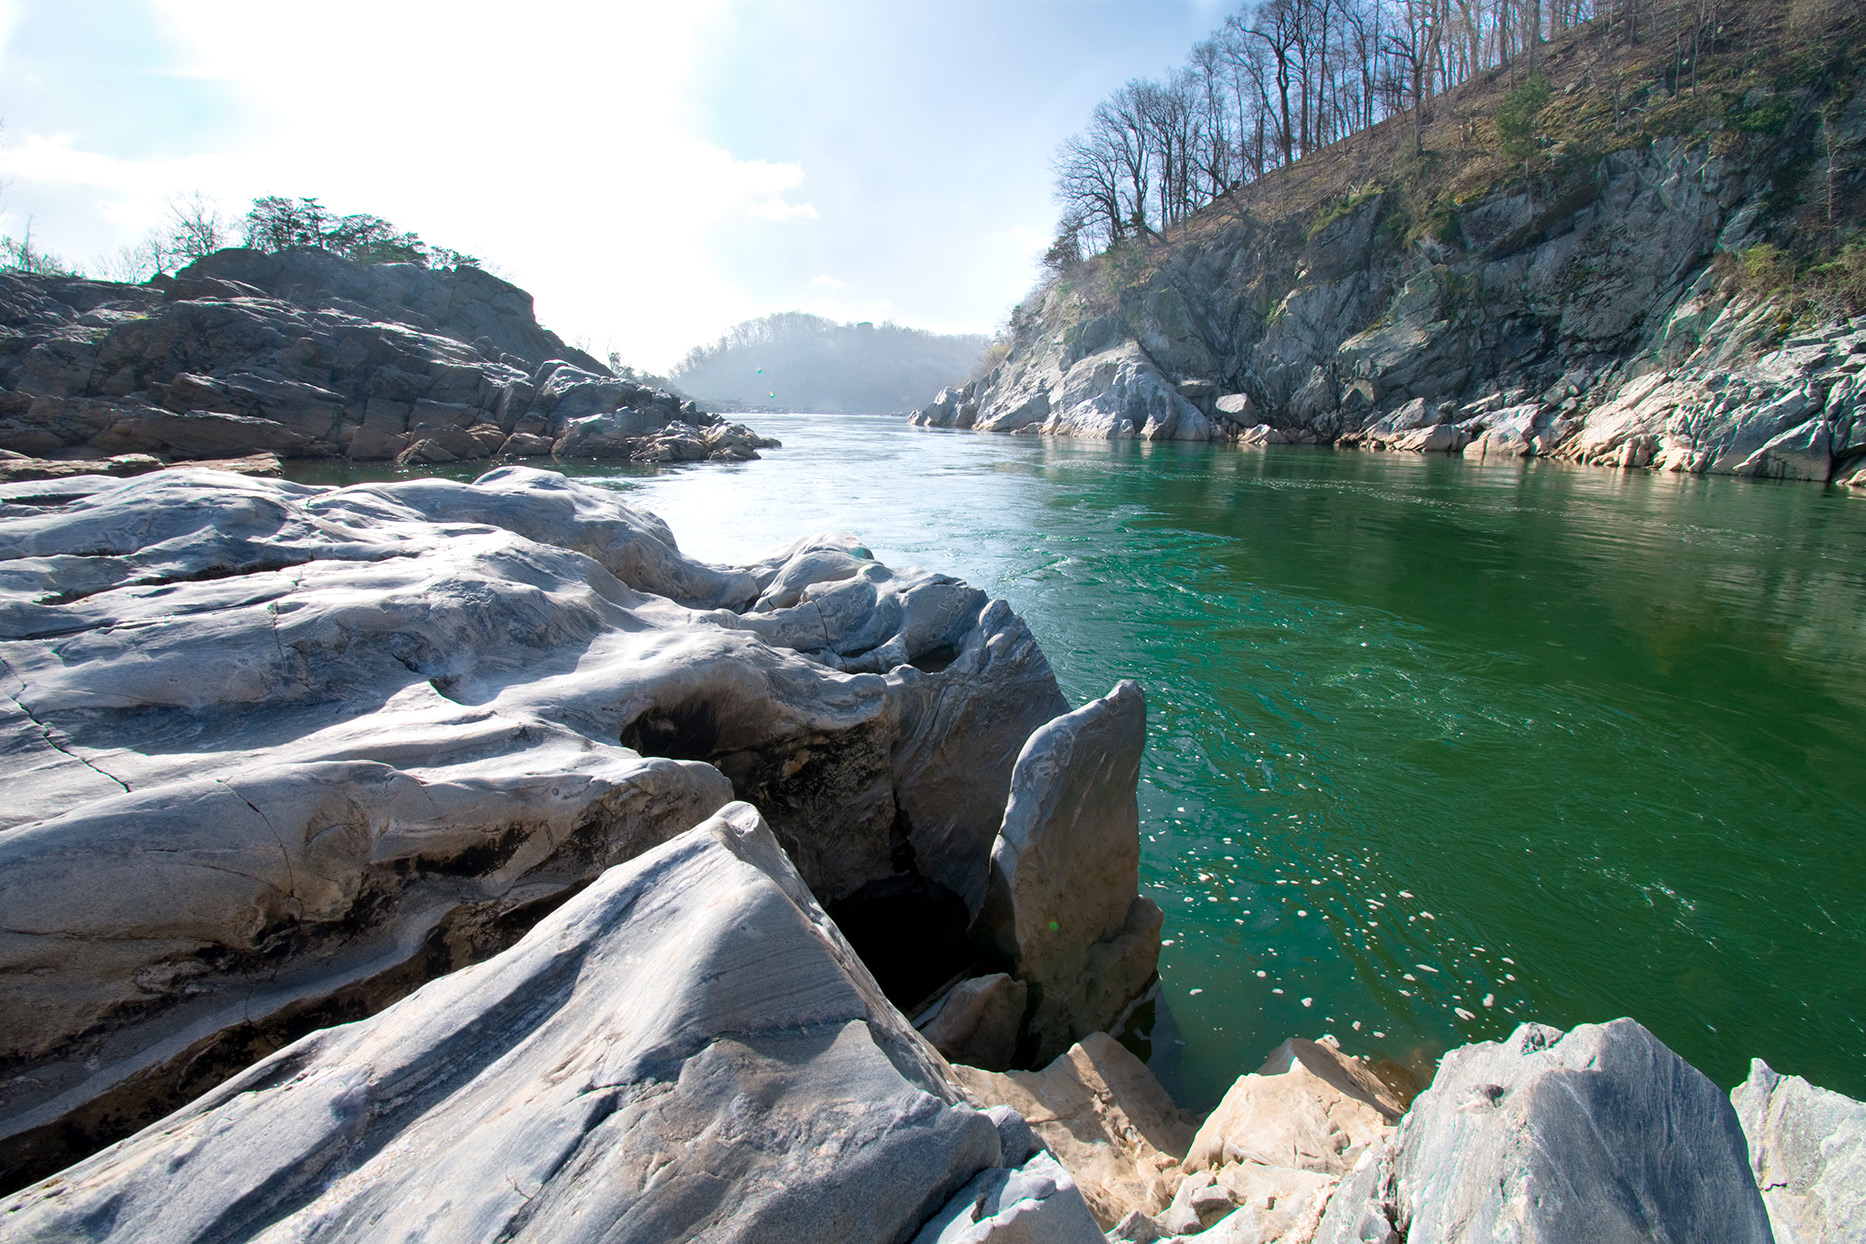 Billy Goat Trail in Maryland